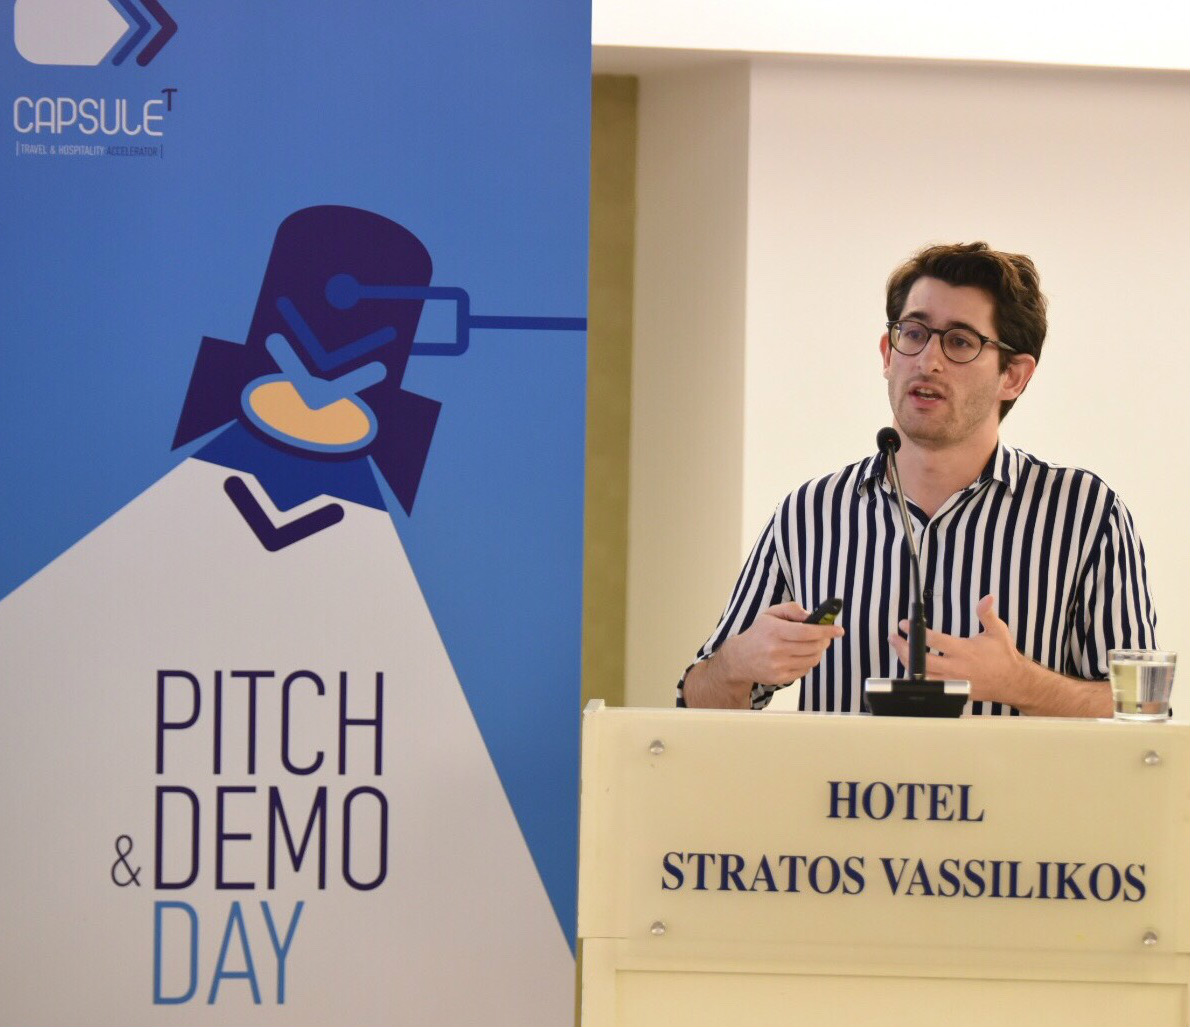 Pitch & Demo Day